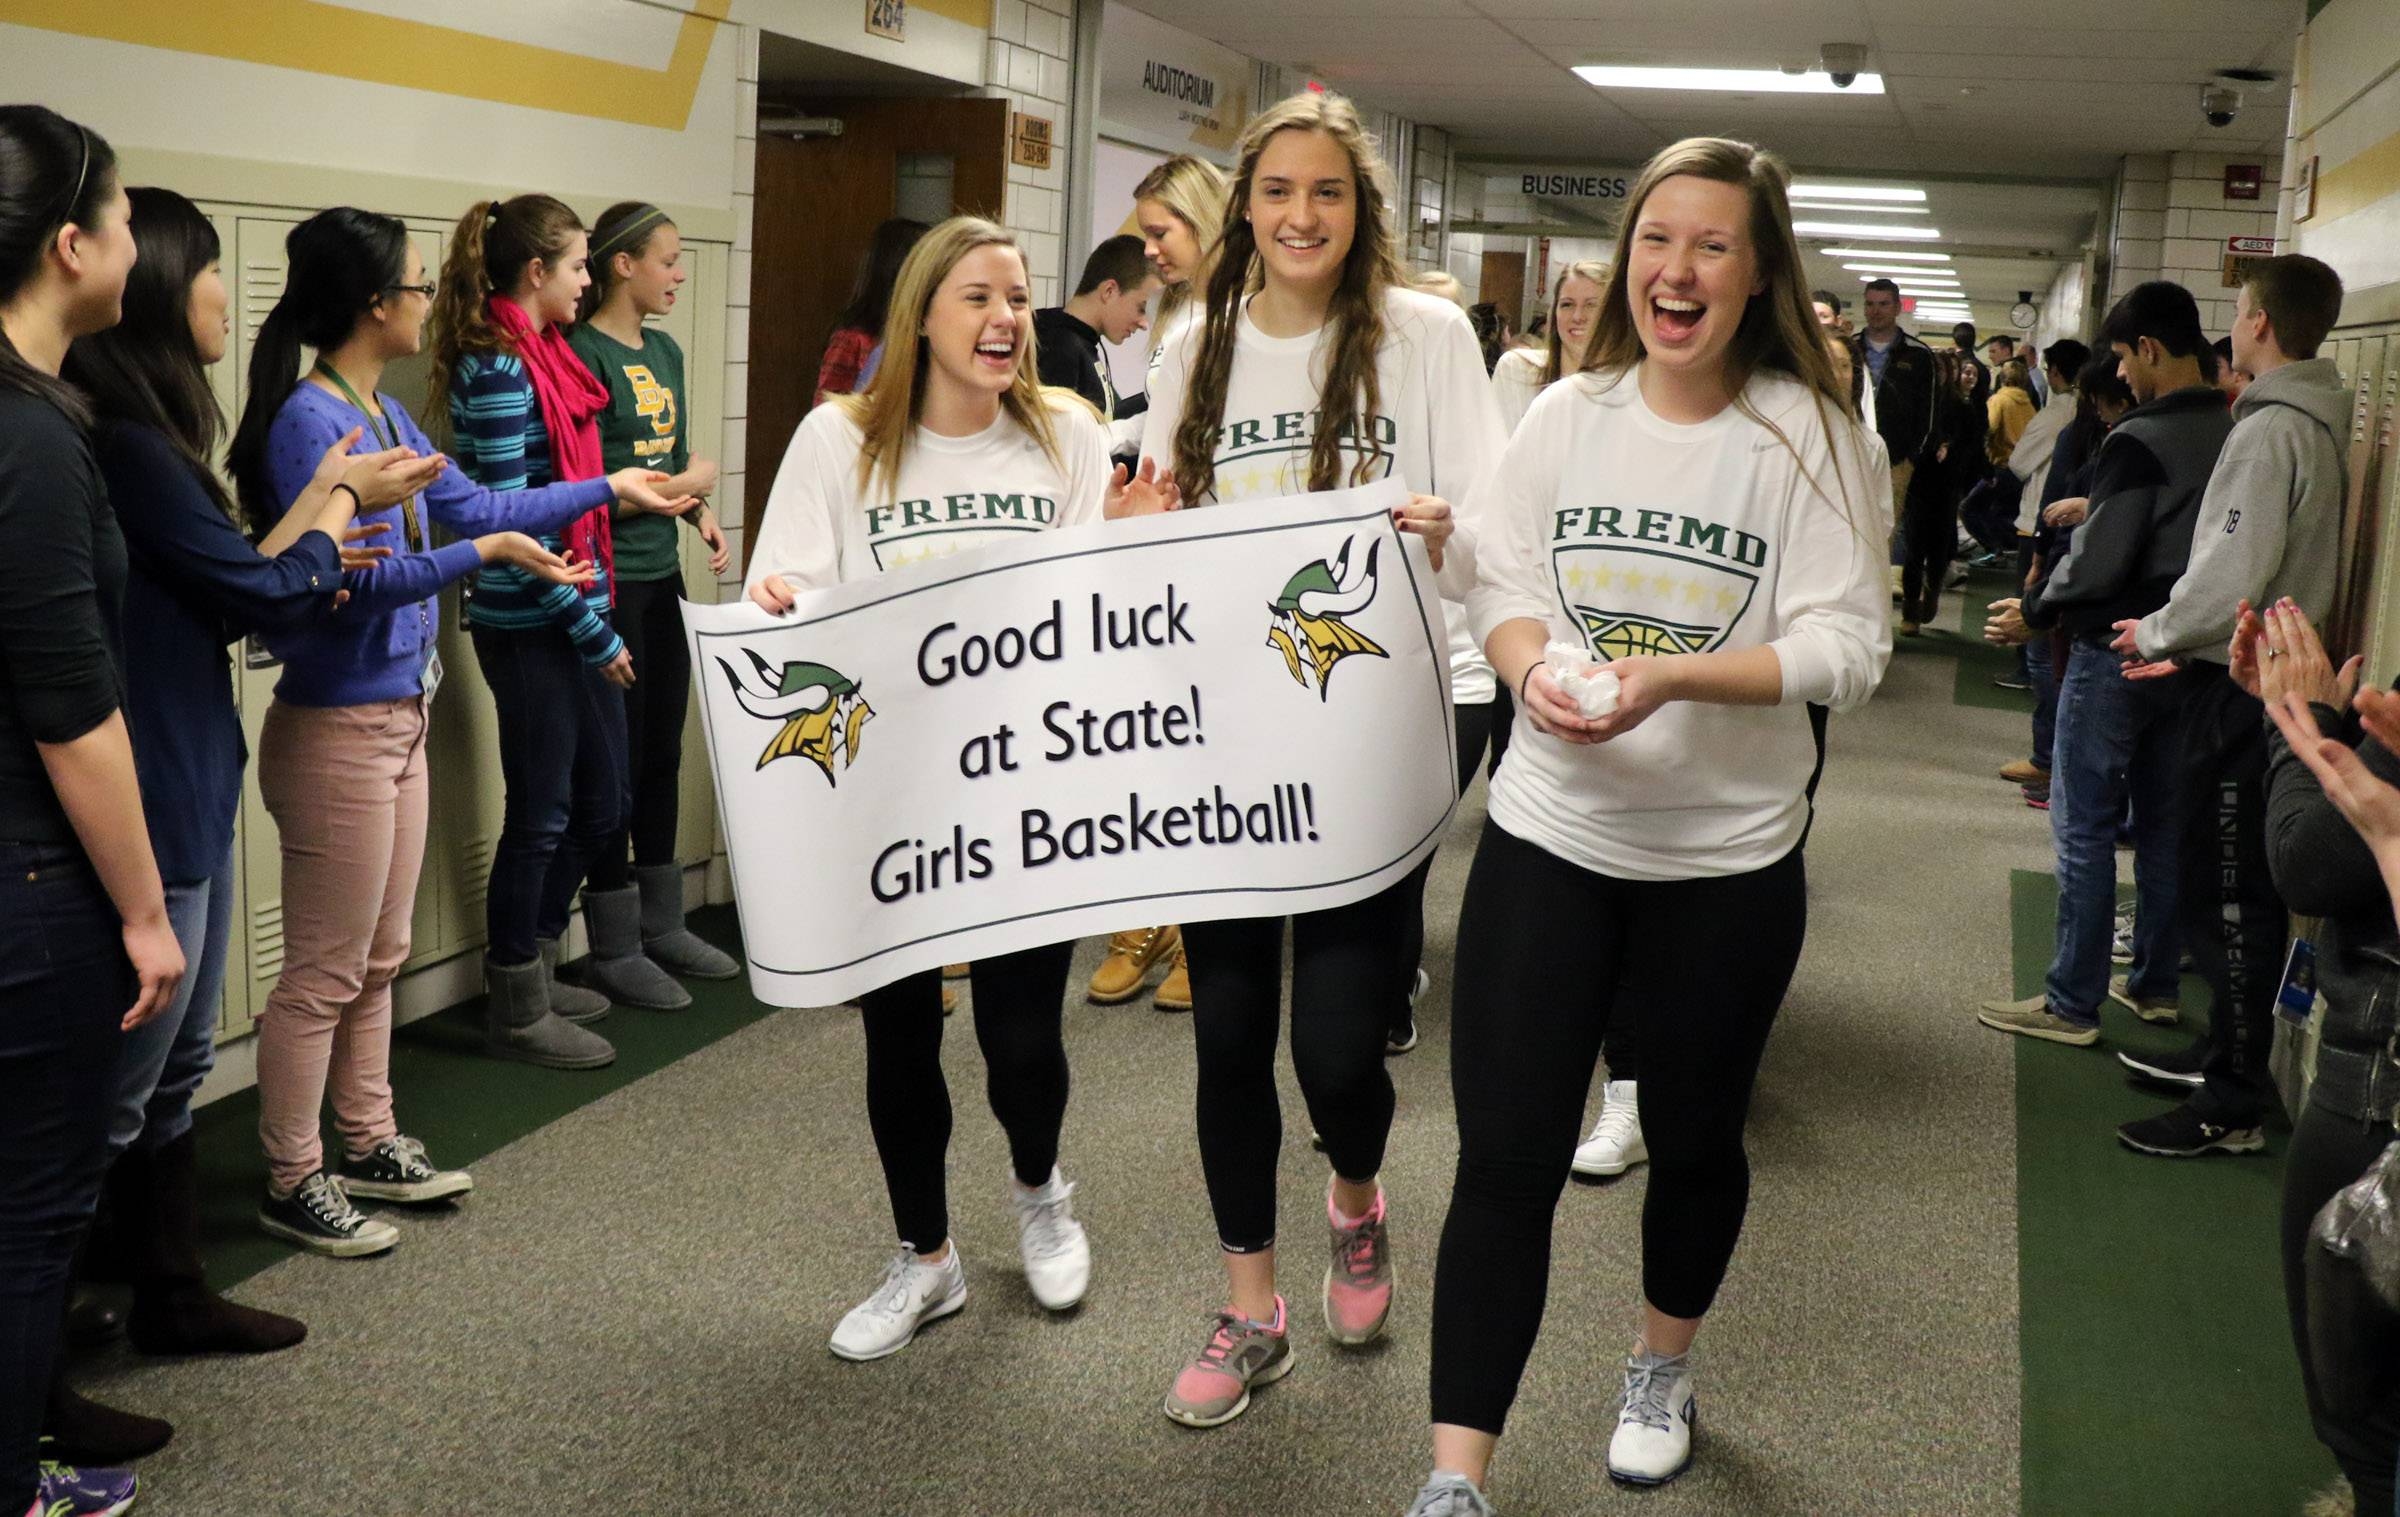 Fremd team sent off in style to state semifinal